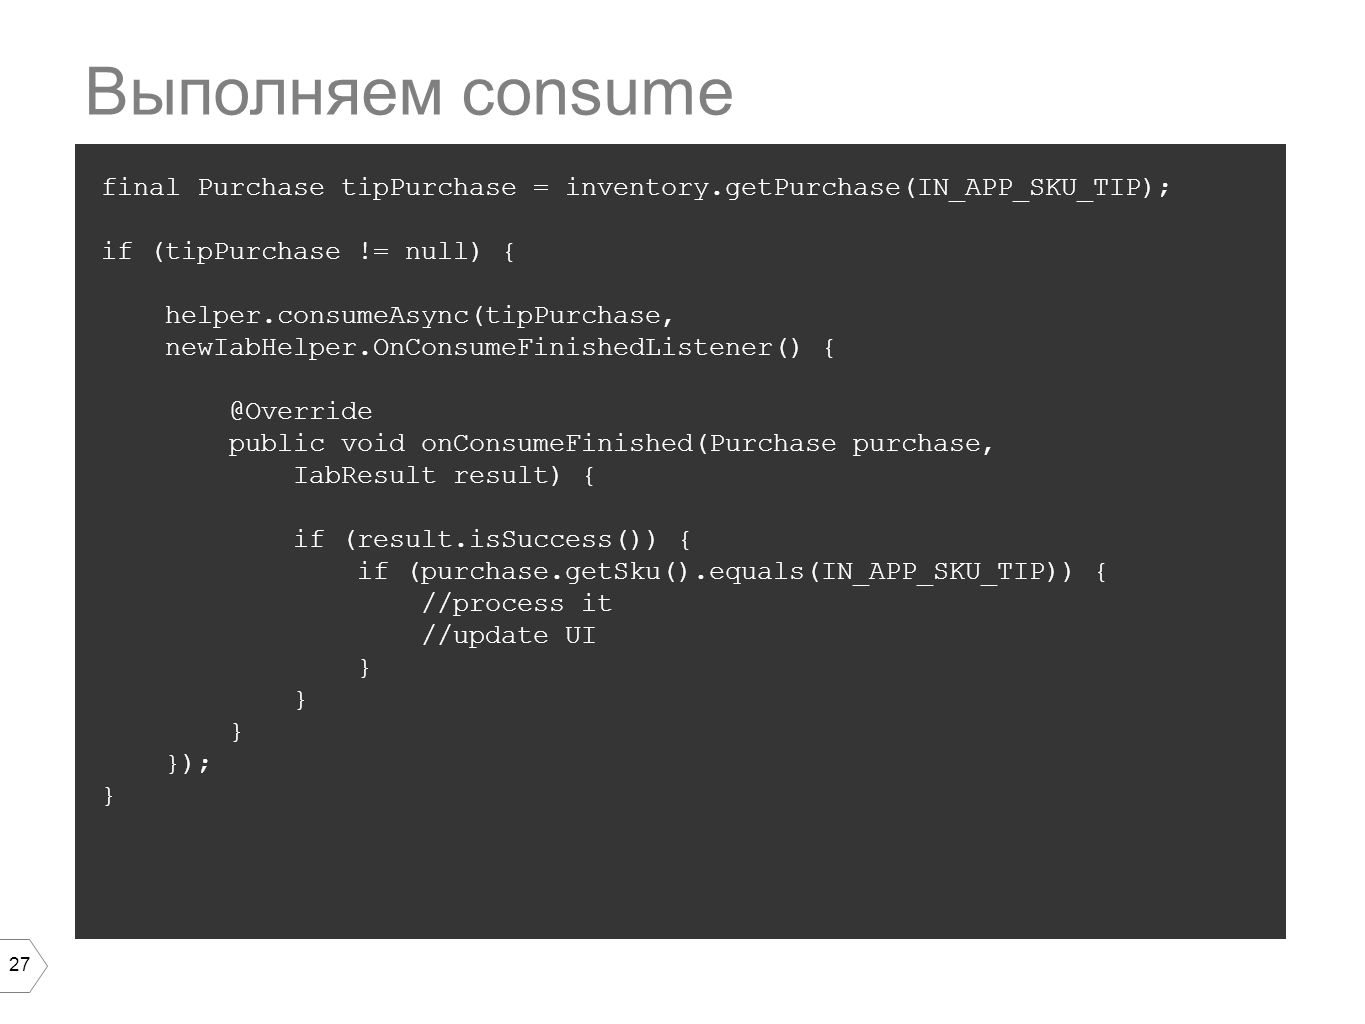 27 final Purchase tipPurchase = inventory.getPurchase(IN_APP_SKU_TIP); if (tipPurchase != null) { helper.consumeAsync(tipPurchase, newIabHelper.OnConsumeFinishedListener() { @Override public void onConsumeFinished(Purchase purchase, IabResult result) { if (result.isSuccess()) { if (purchase.getSku().equals(IN_APP_SKU_TIP)) { //process it //update UI } }); } Выполняем consume